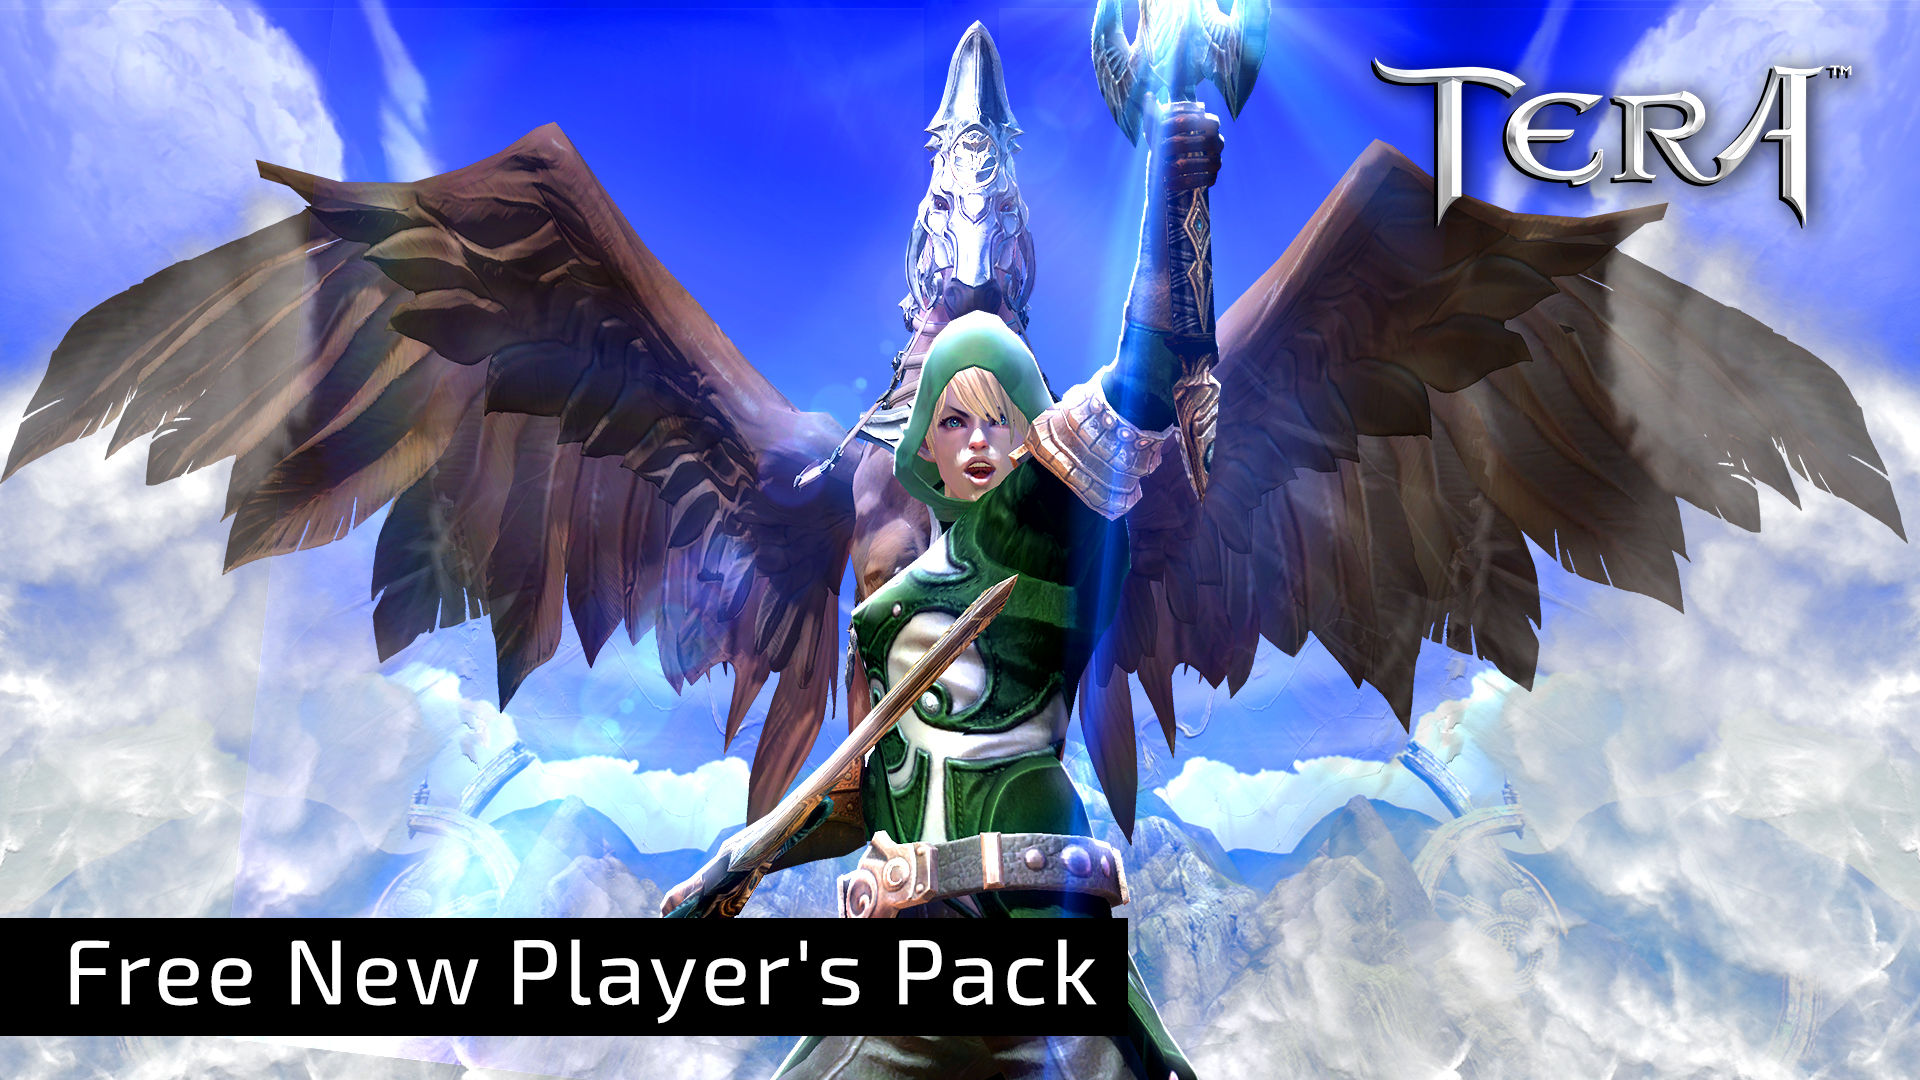 TERA: Free New Player's Pack on Steam